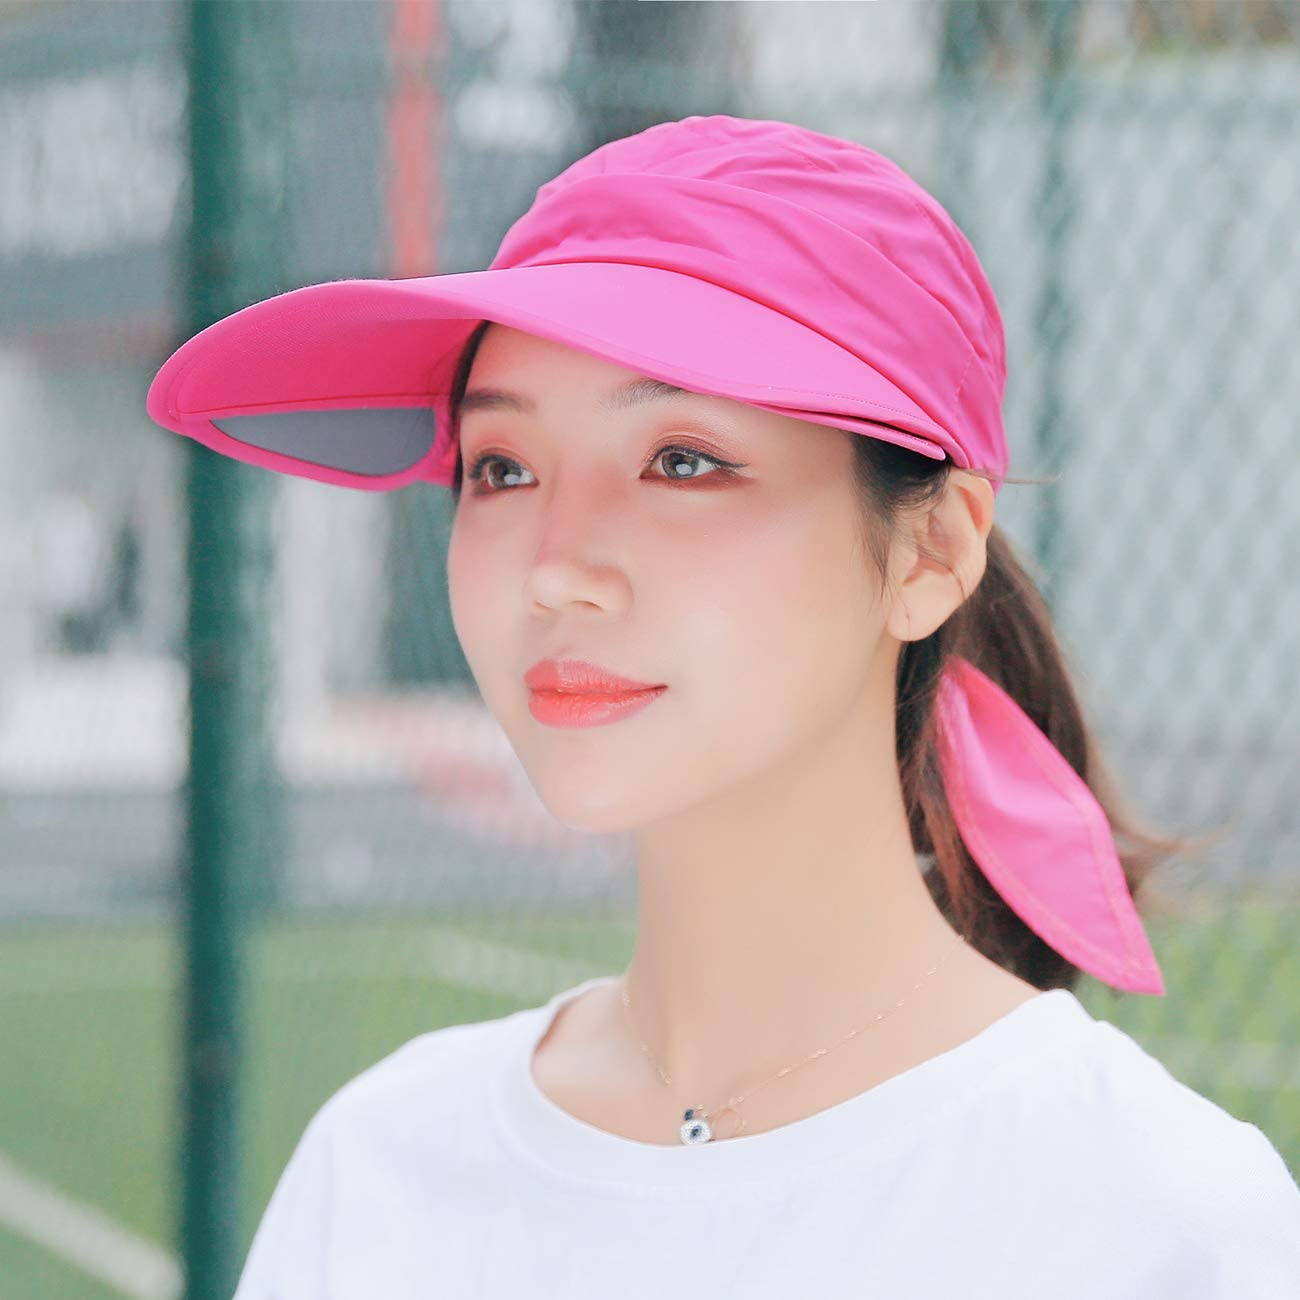 Maylisacc Sun Hat Visor Insert Sun Hat Women with Adjustable Size for Vacation and Outdoor Activities